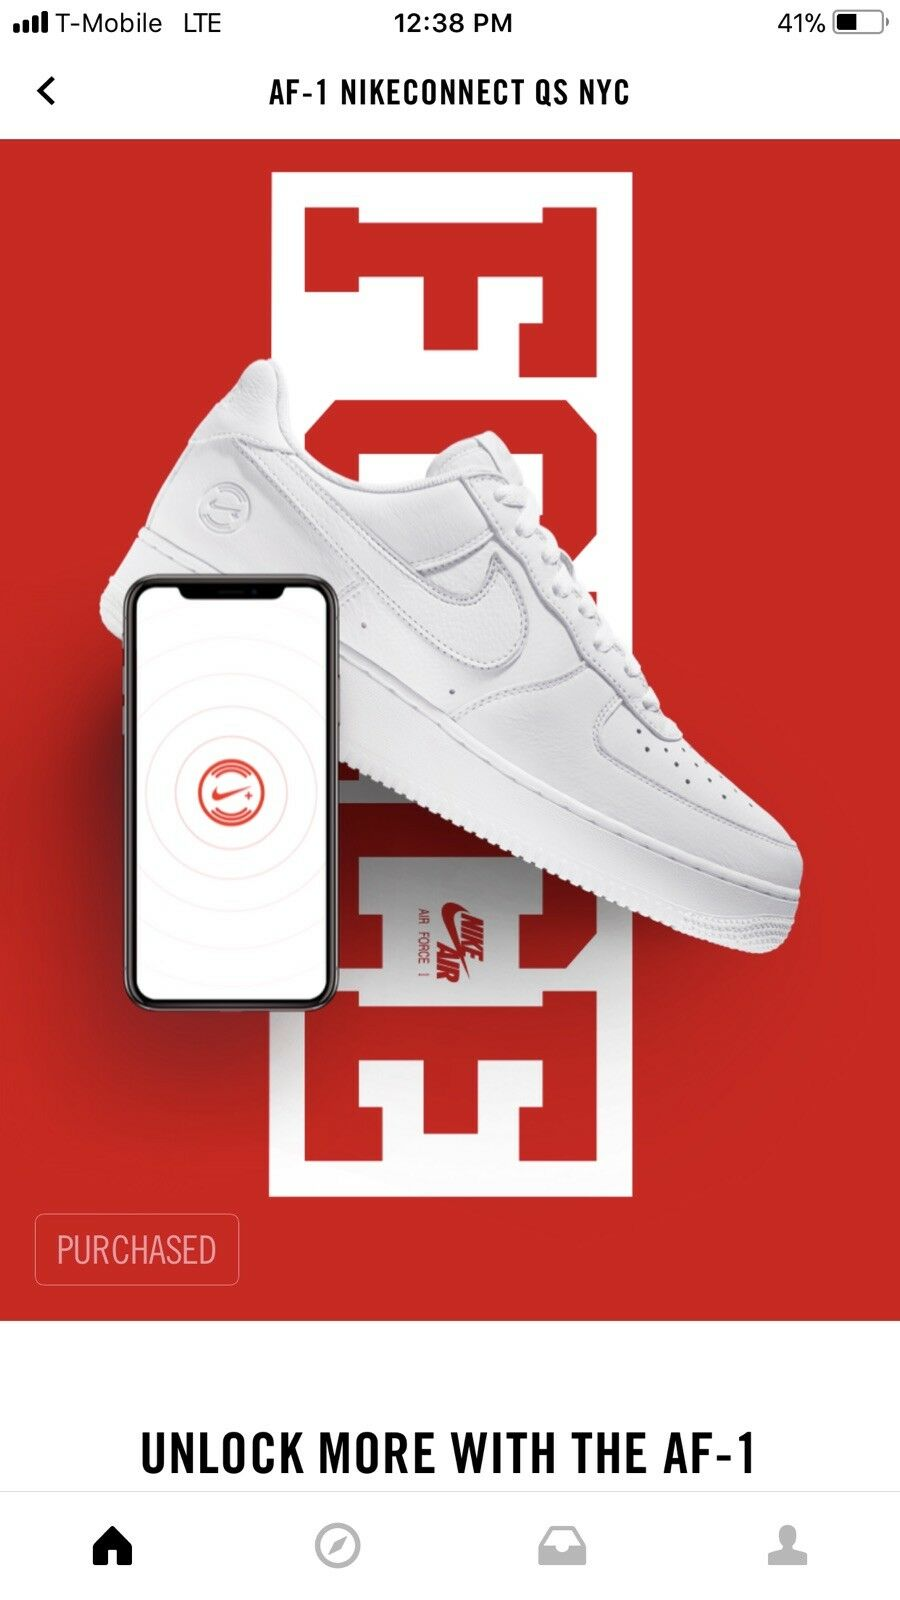 NIKE AF1 NikeConnnect QS NYC  Cheap and fashionable